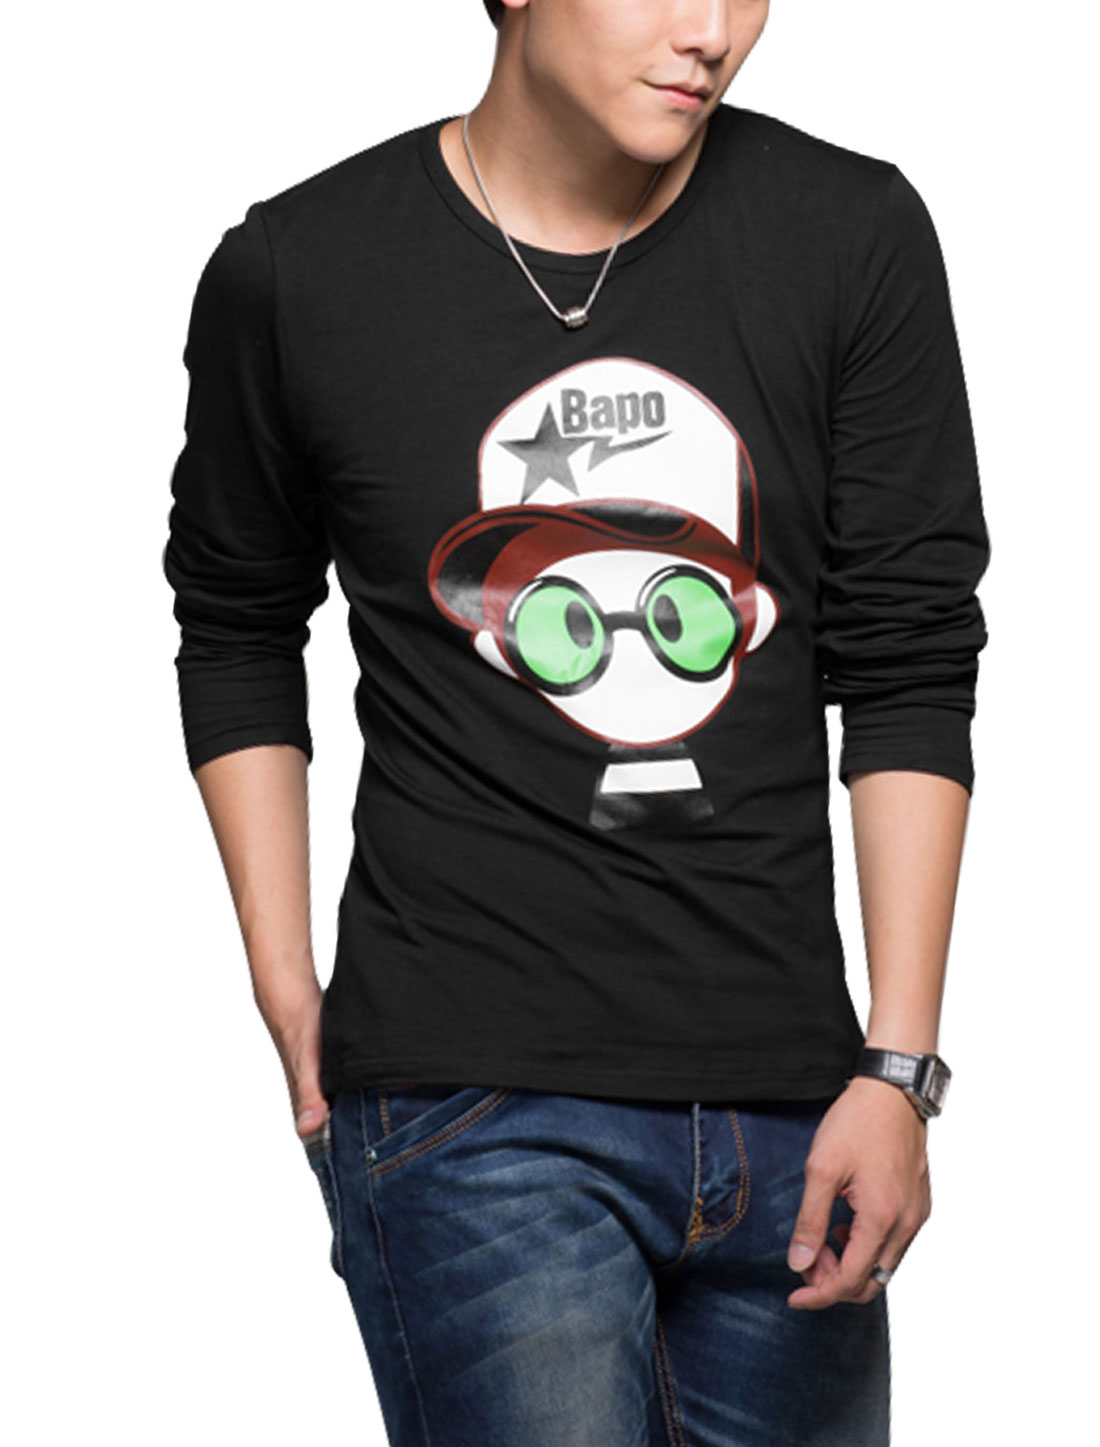 Man Long Sleeves Cartoon Prints Round Neck T-Shirt Black M